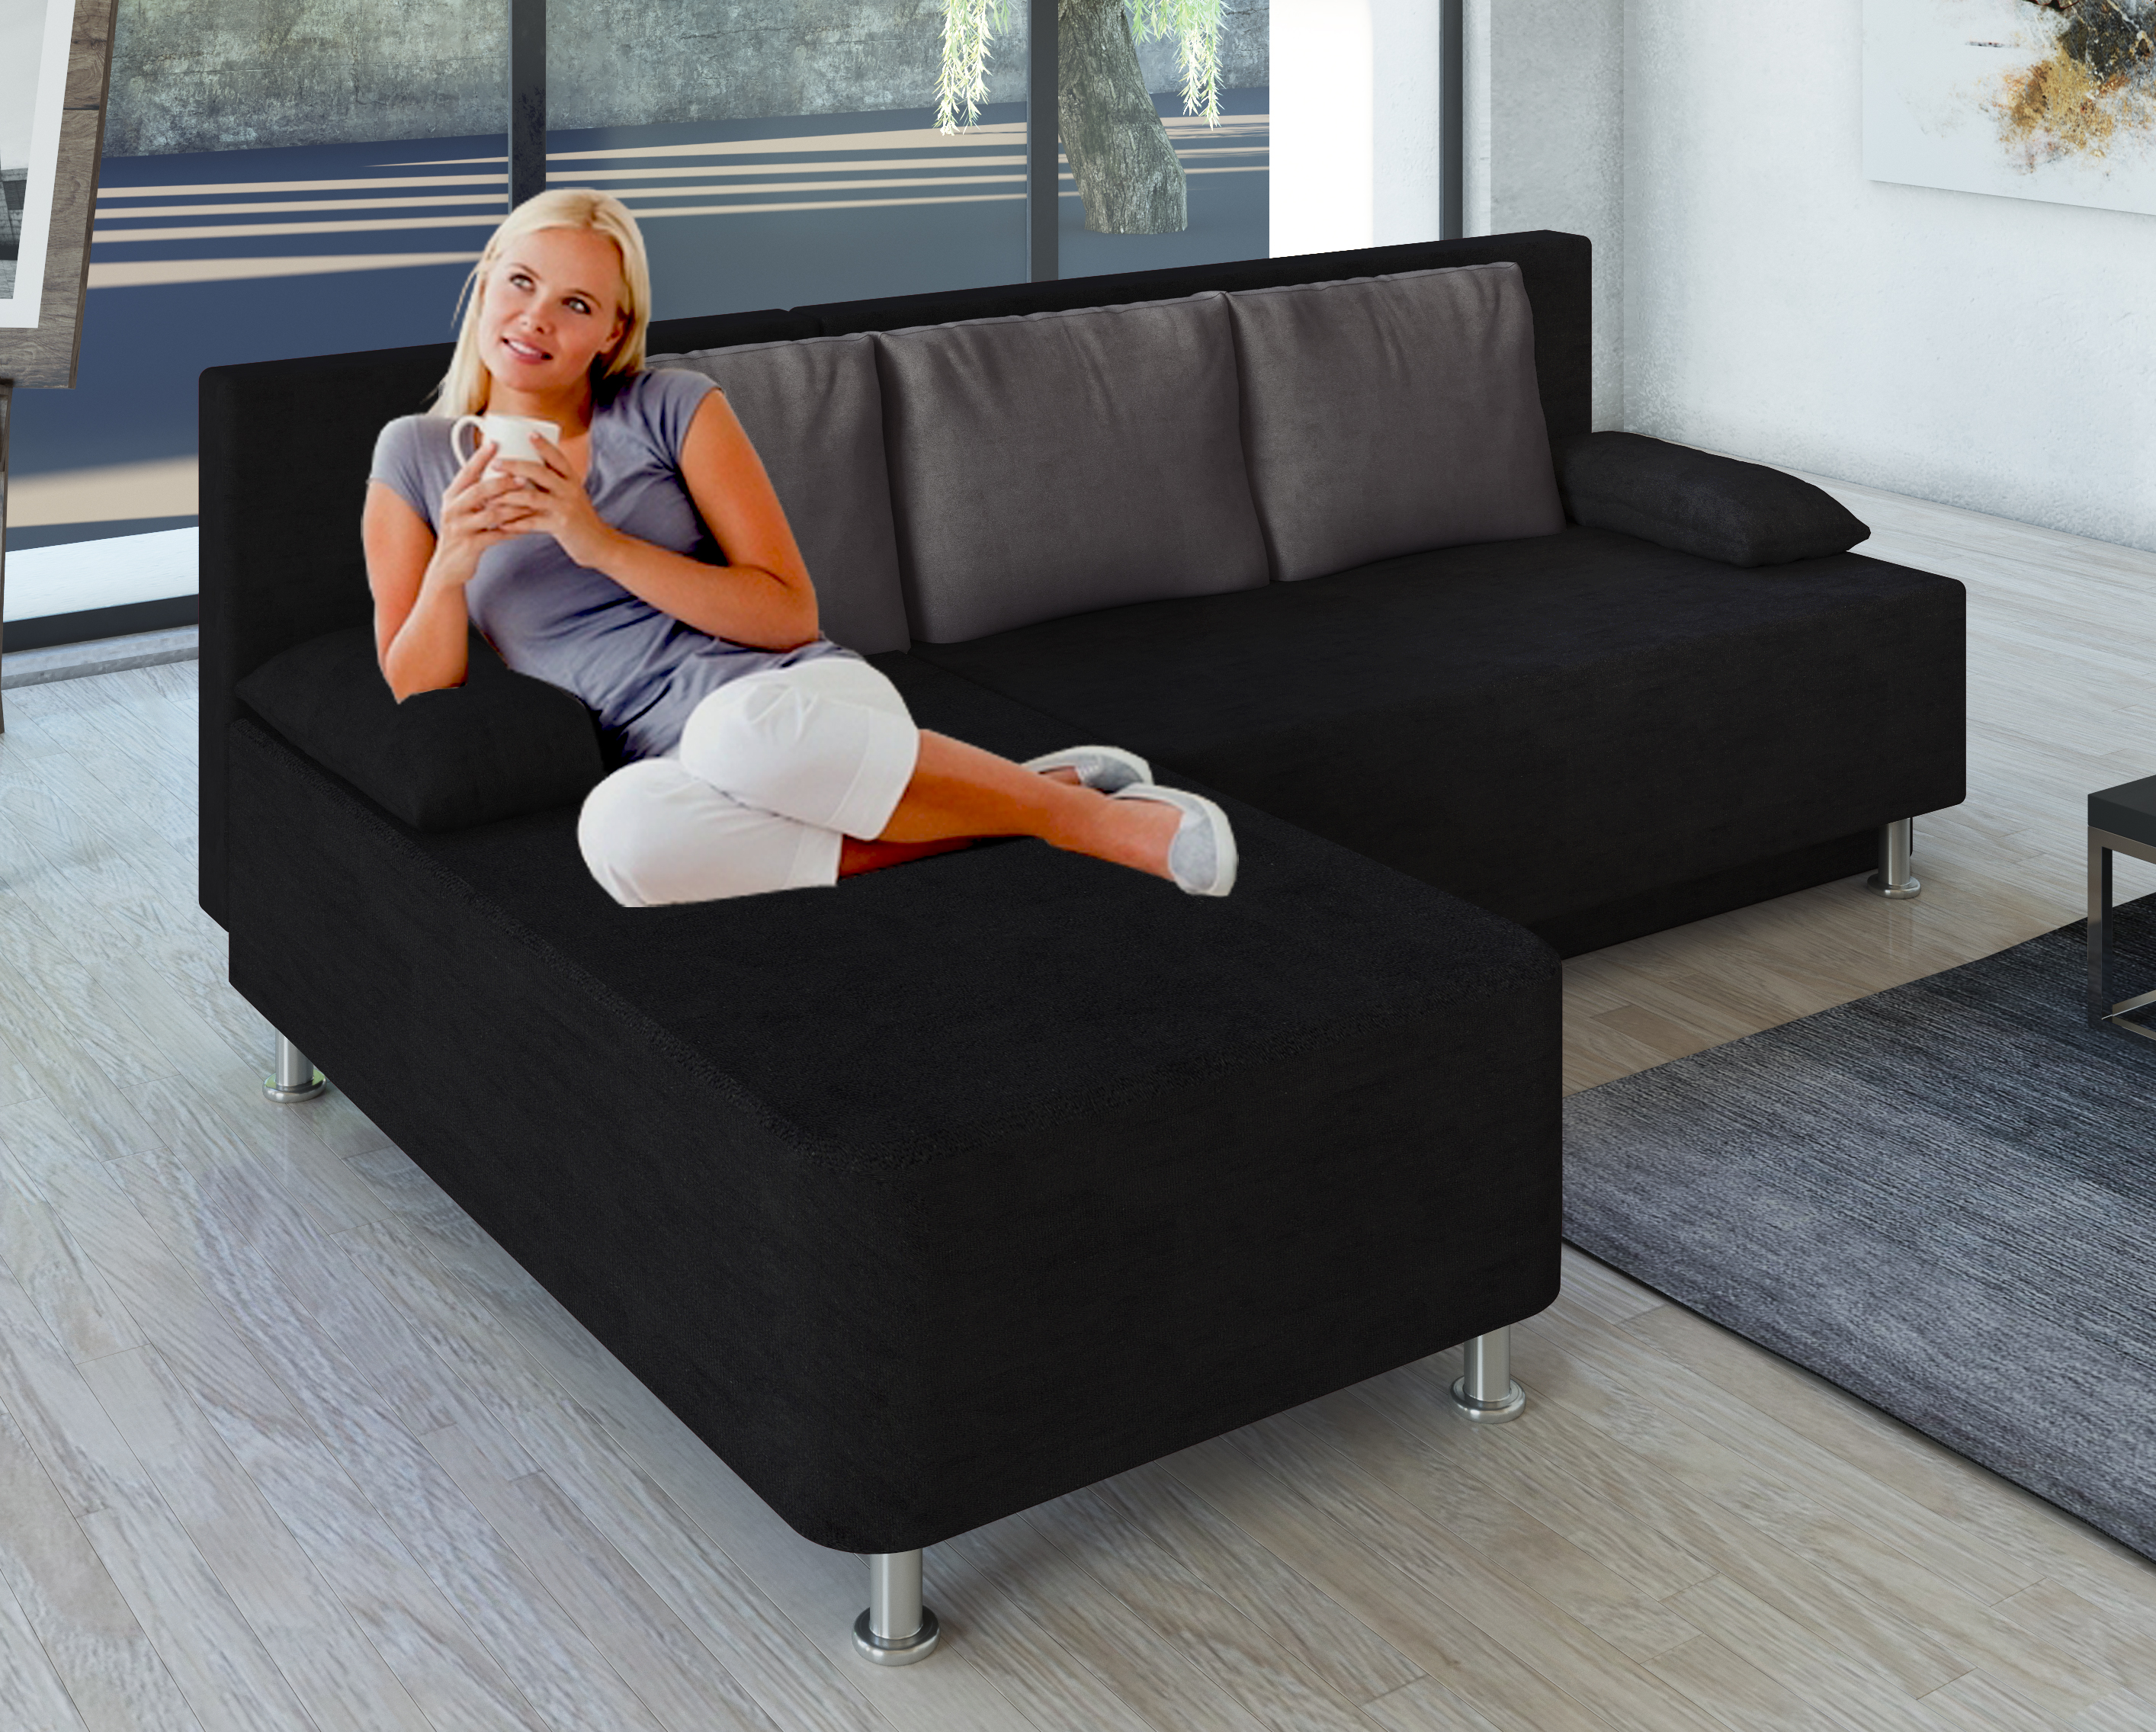 sofas sofa garnituren g nstig online kaufen dito24. Black Bedroom Furniture Sets. Home Design Ideas